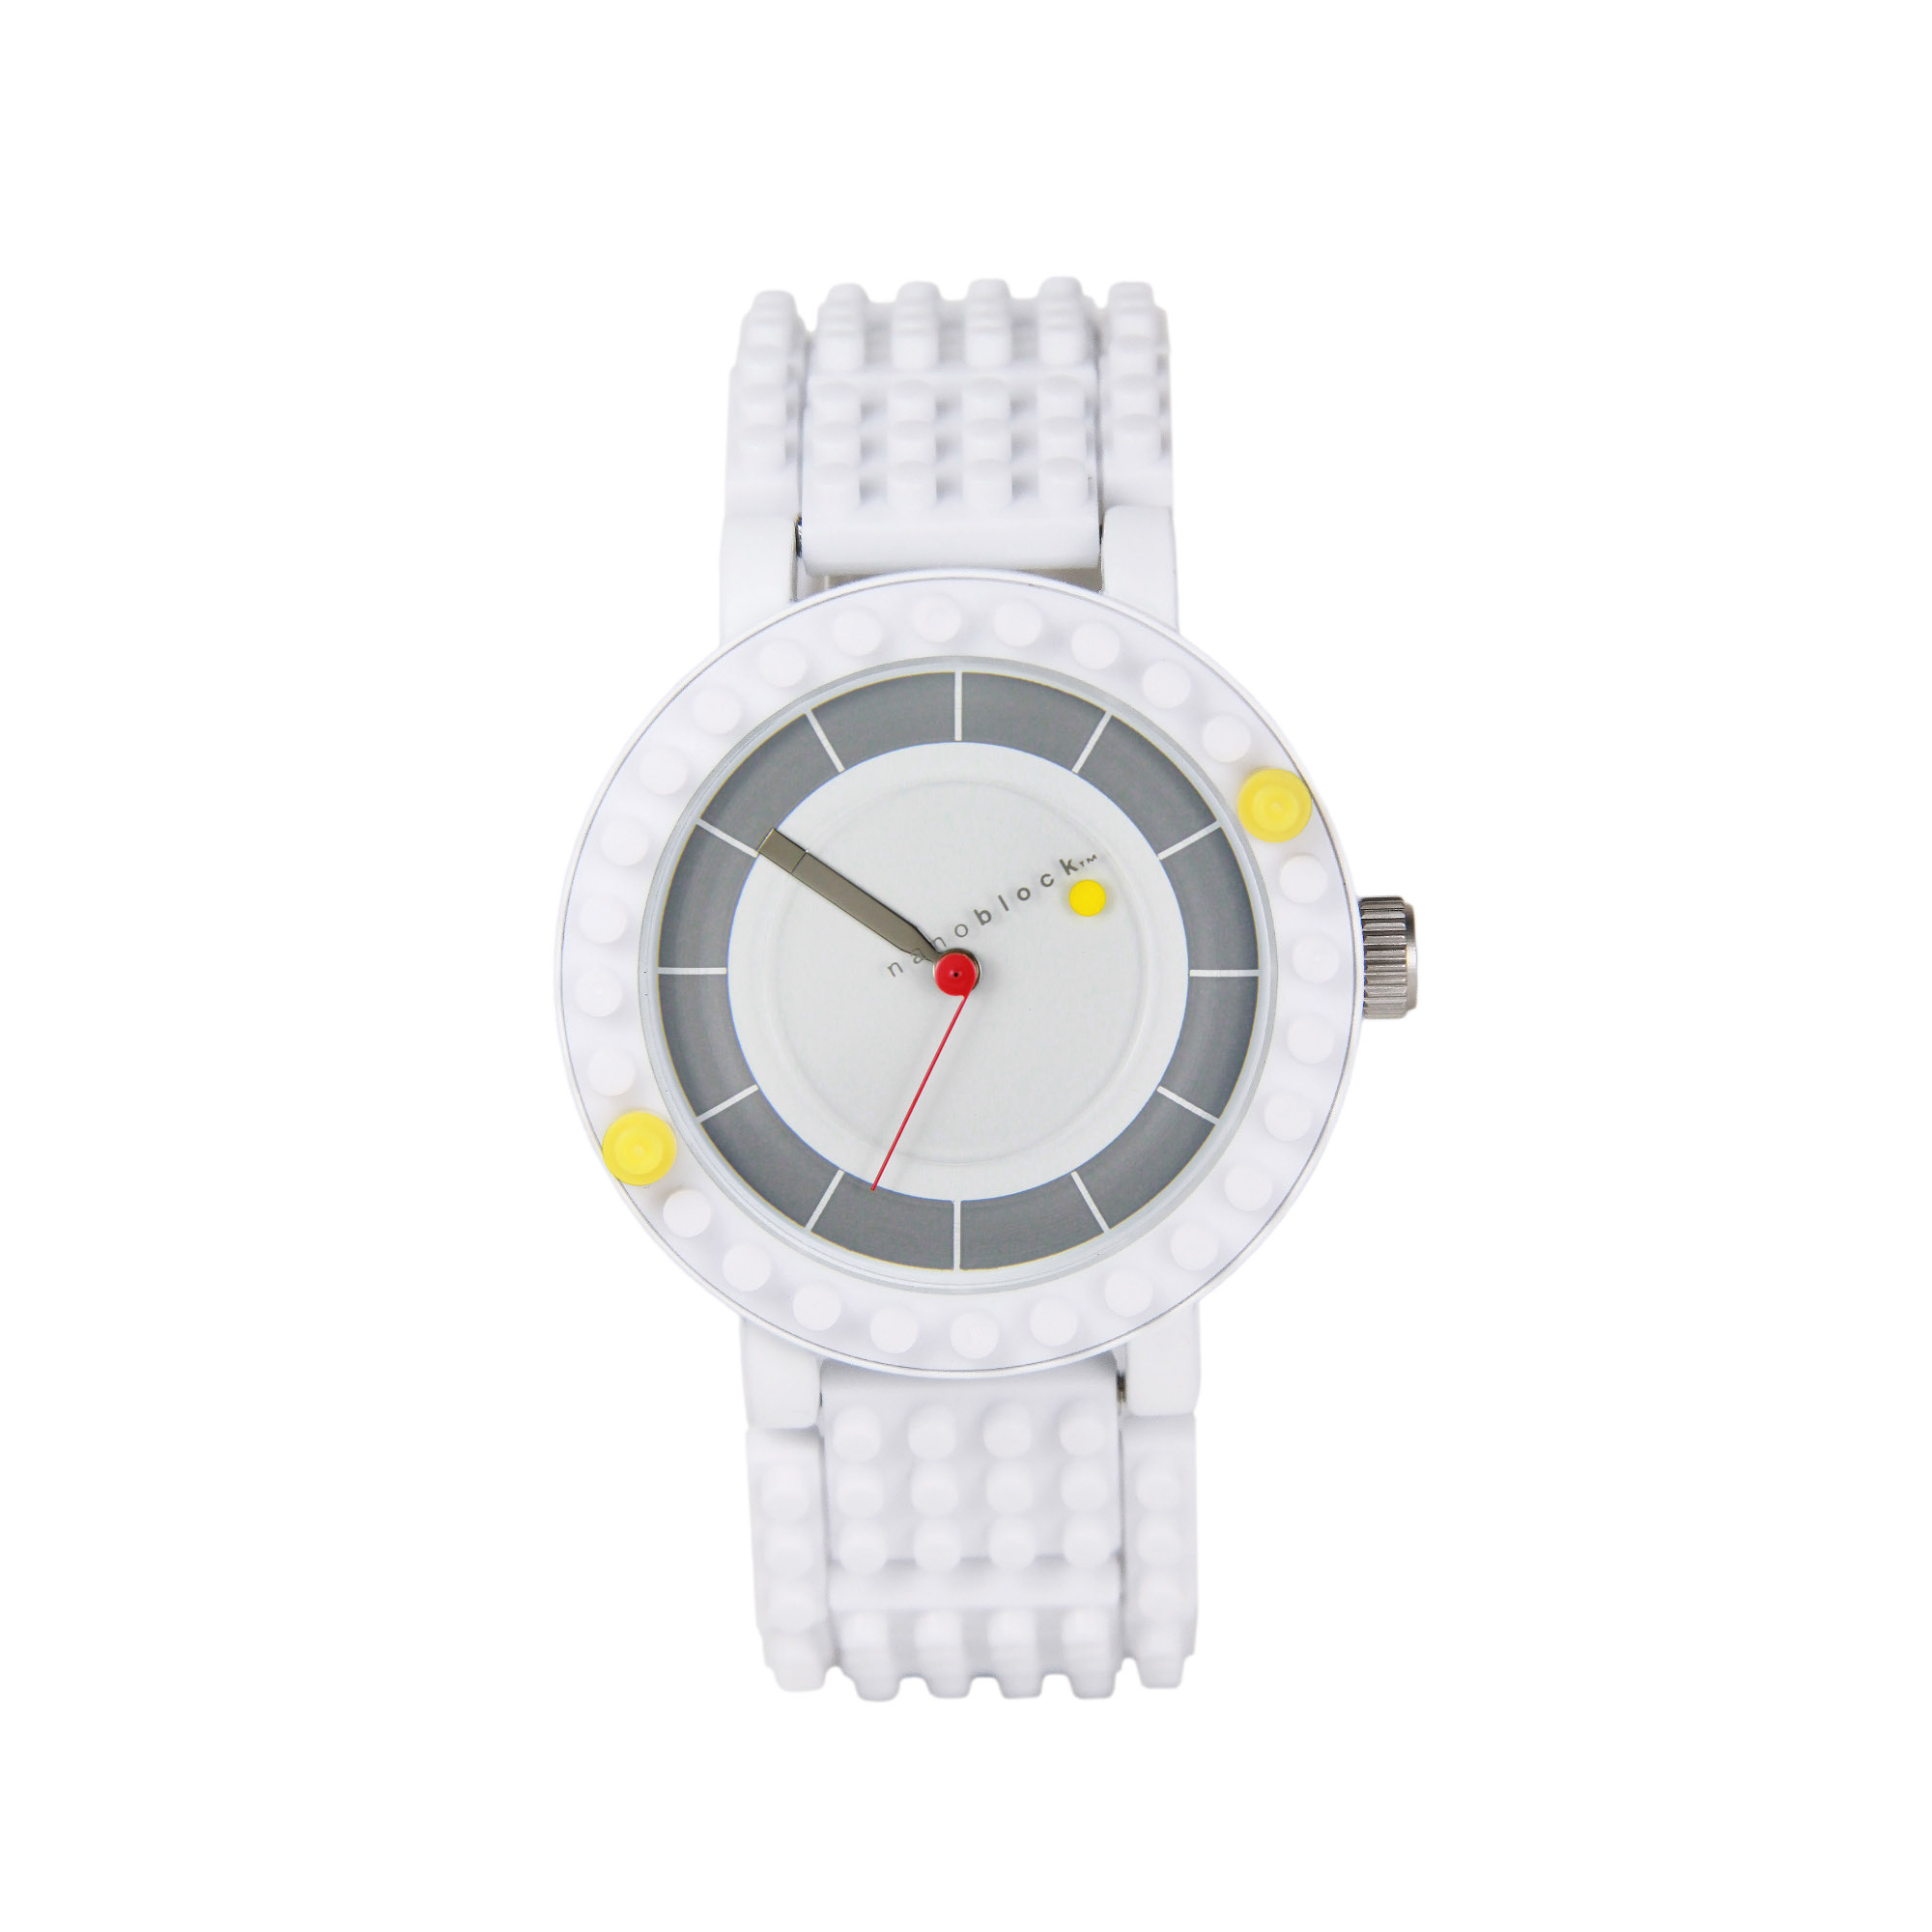 Nanoblocktime All Rounder Watch, White by Beta Enteprises Inc.